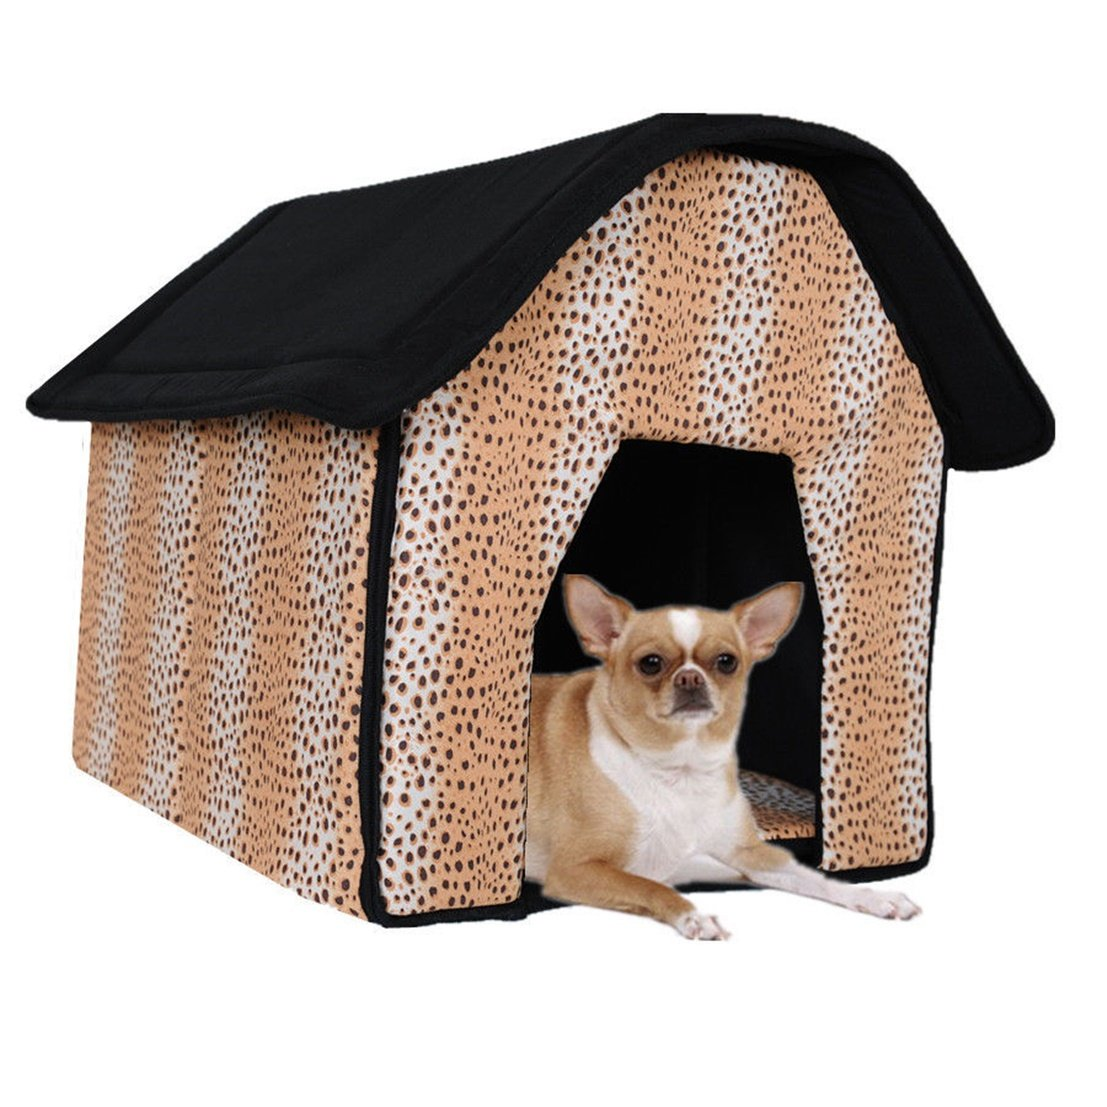 1 Set Ornate Popular Indoor Pet House Cat Furniture Soft and Warm Fabric Portable Bed Style Leopard Print